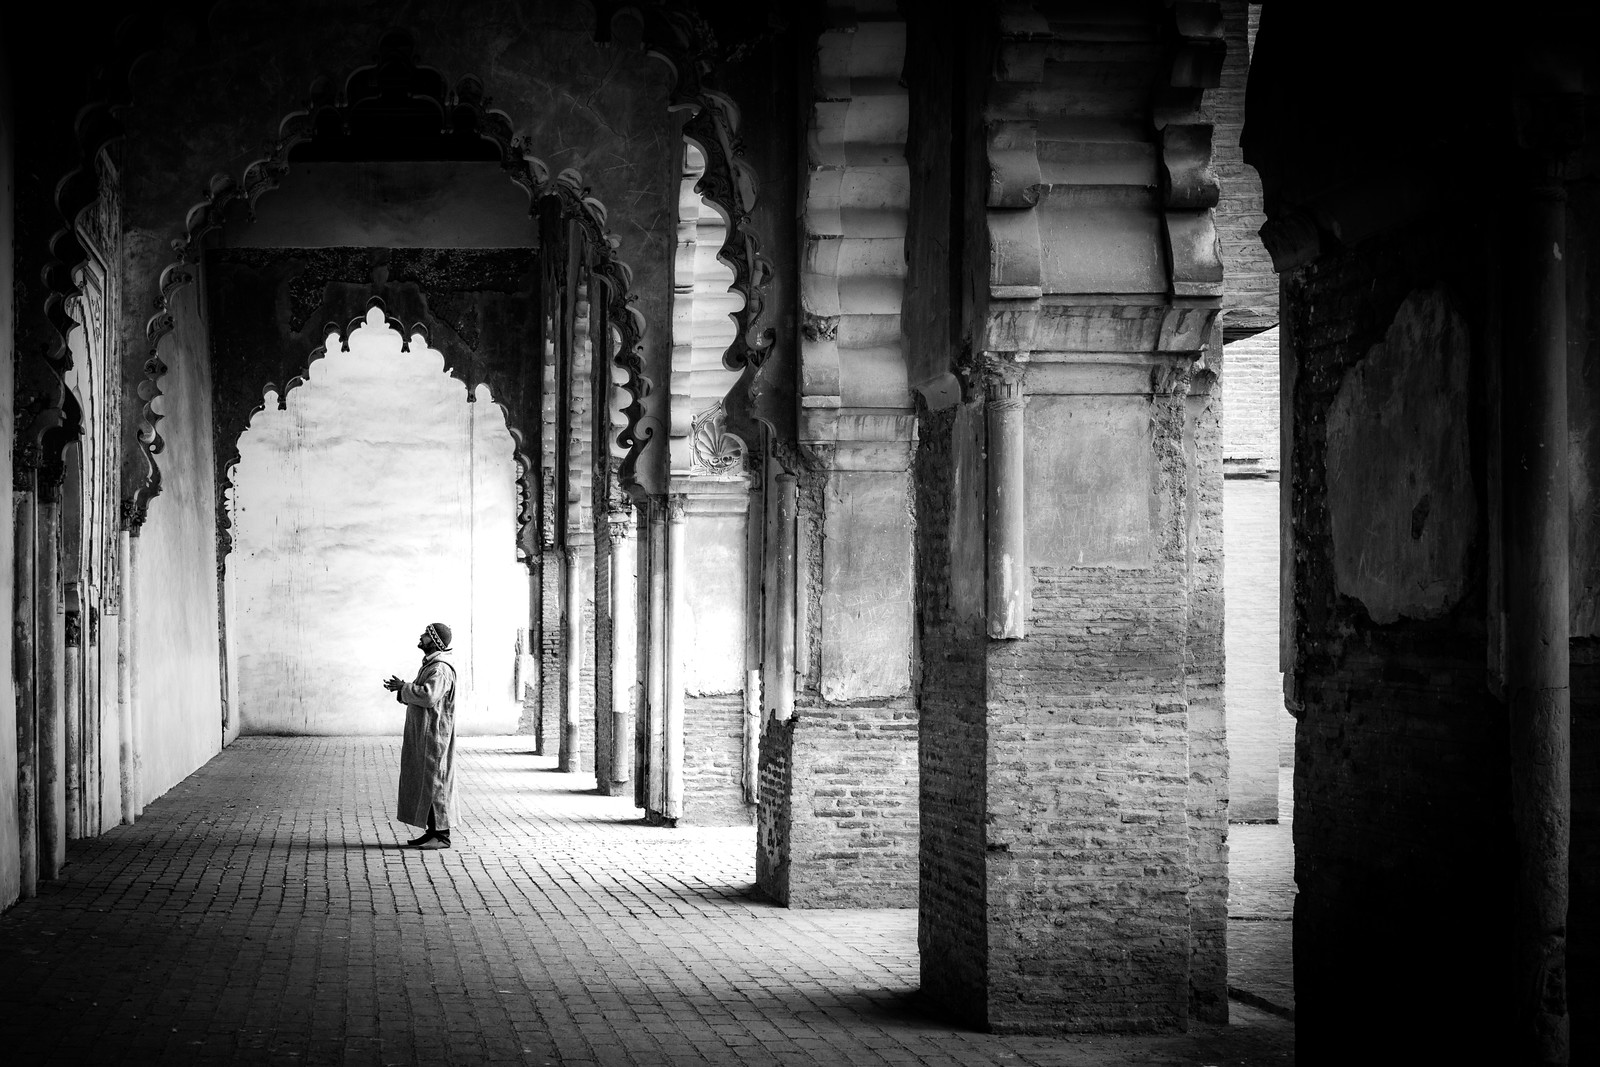 worshiper at Tinmel Mosque in Morocco - Photography workshop with Intentionally Lost and Kevin Wenning #intentionallylost